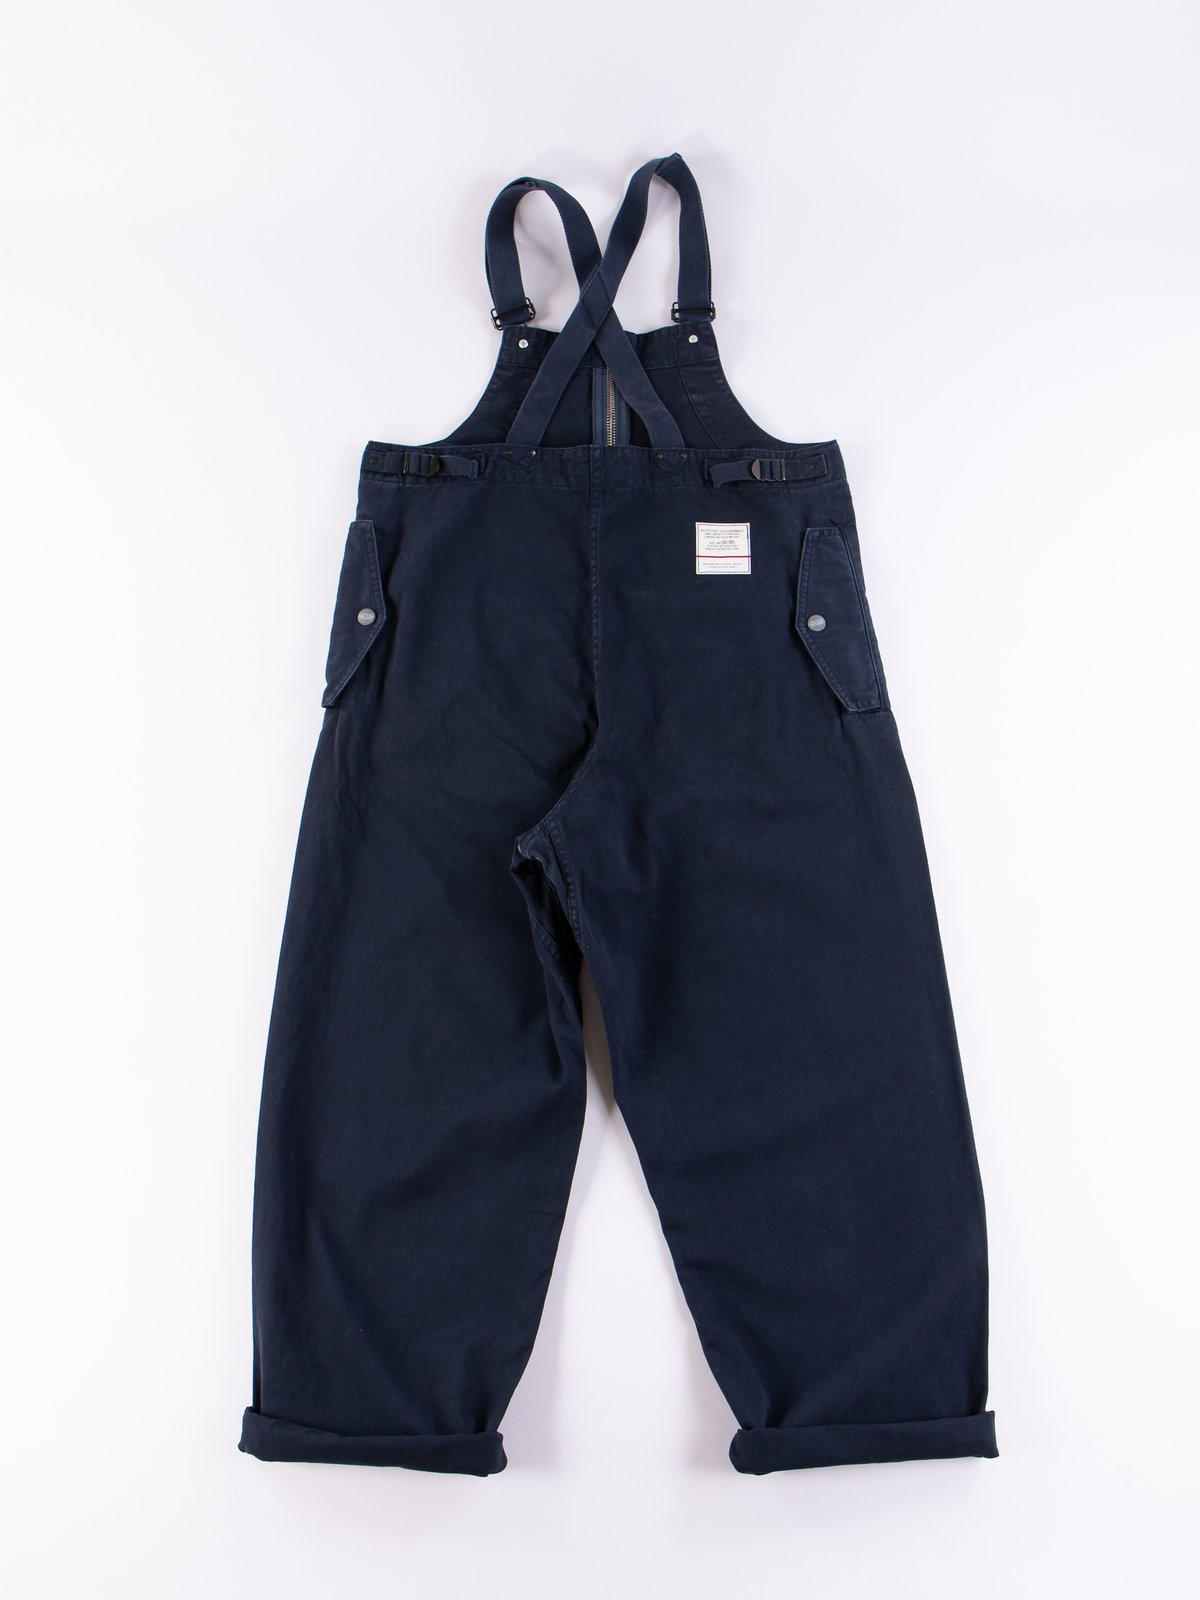 Lybro Black Navy Deck Waders - Image 5